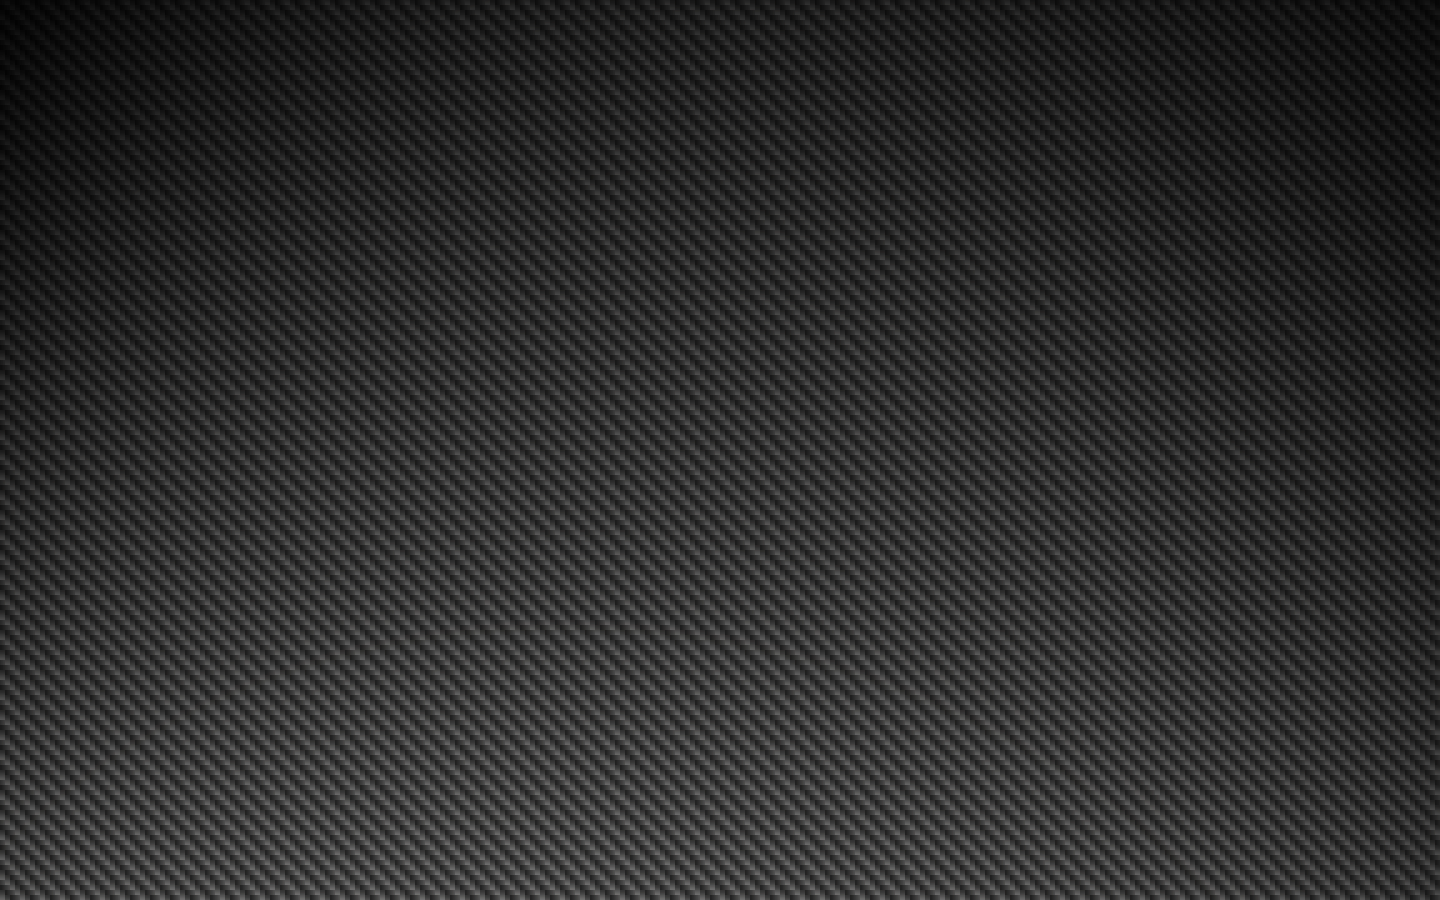 Carbon Fiber Ebin Wallpaper 1440x900 Full HD Wallpapers 1440x900